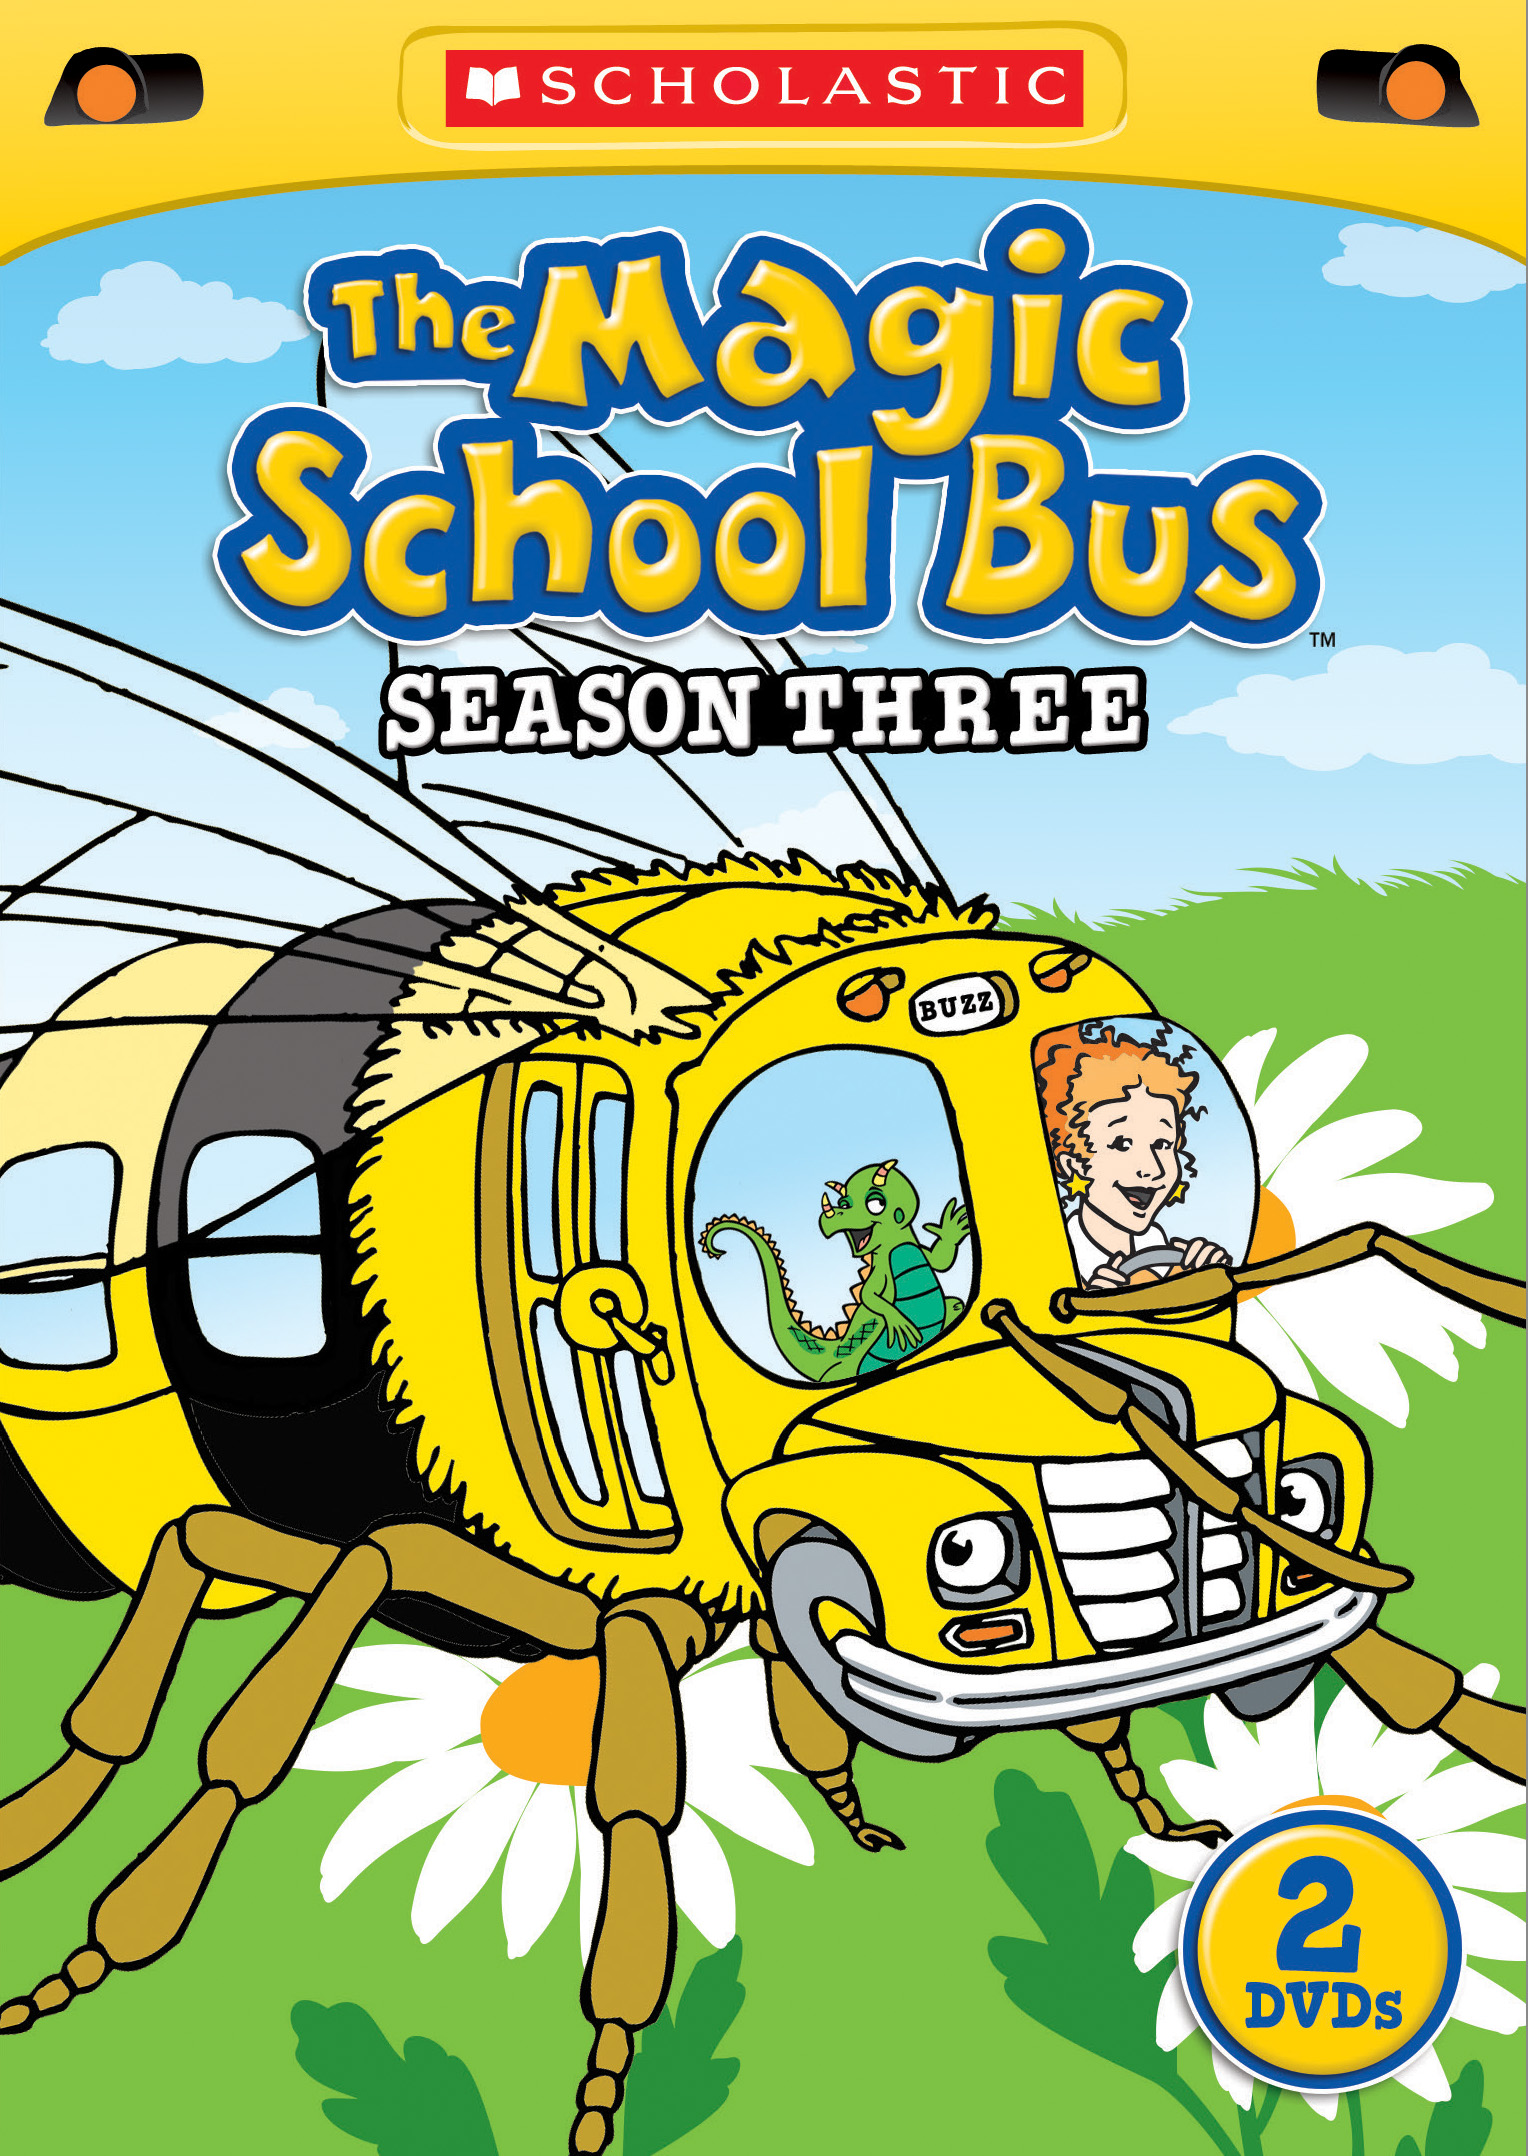 the magic school bus season 3 scholastic cinedigm entertainment